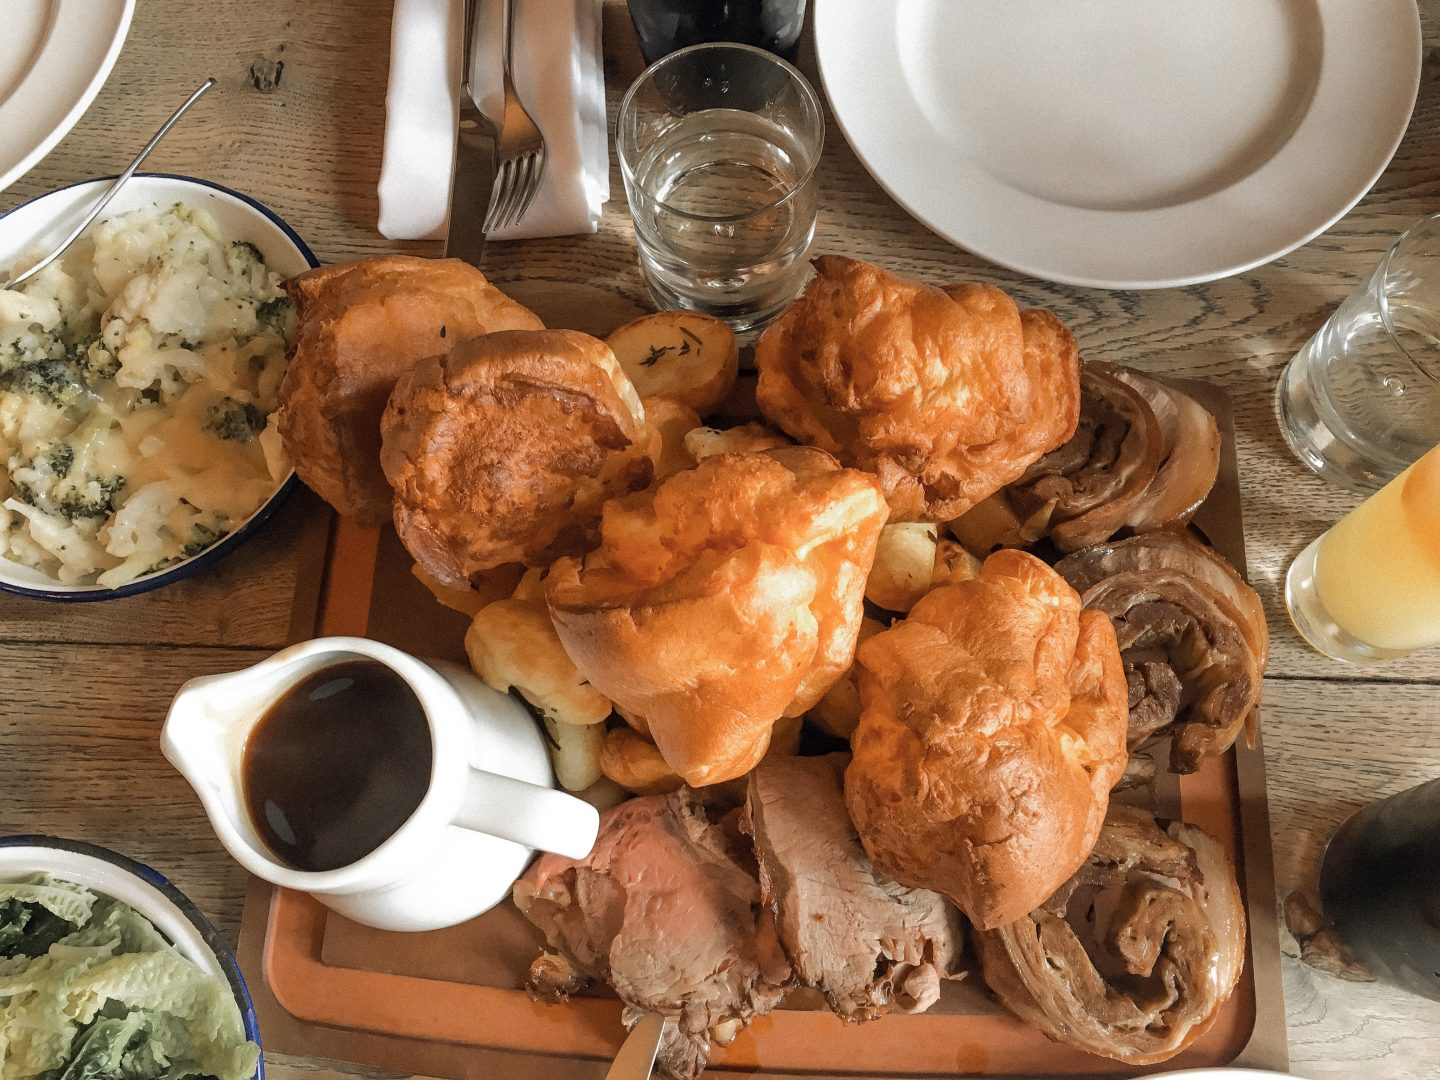 The Cowshed Bristol Sunday Roast